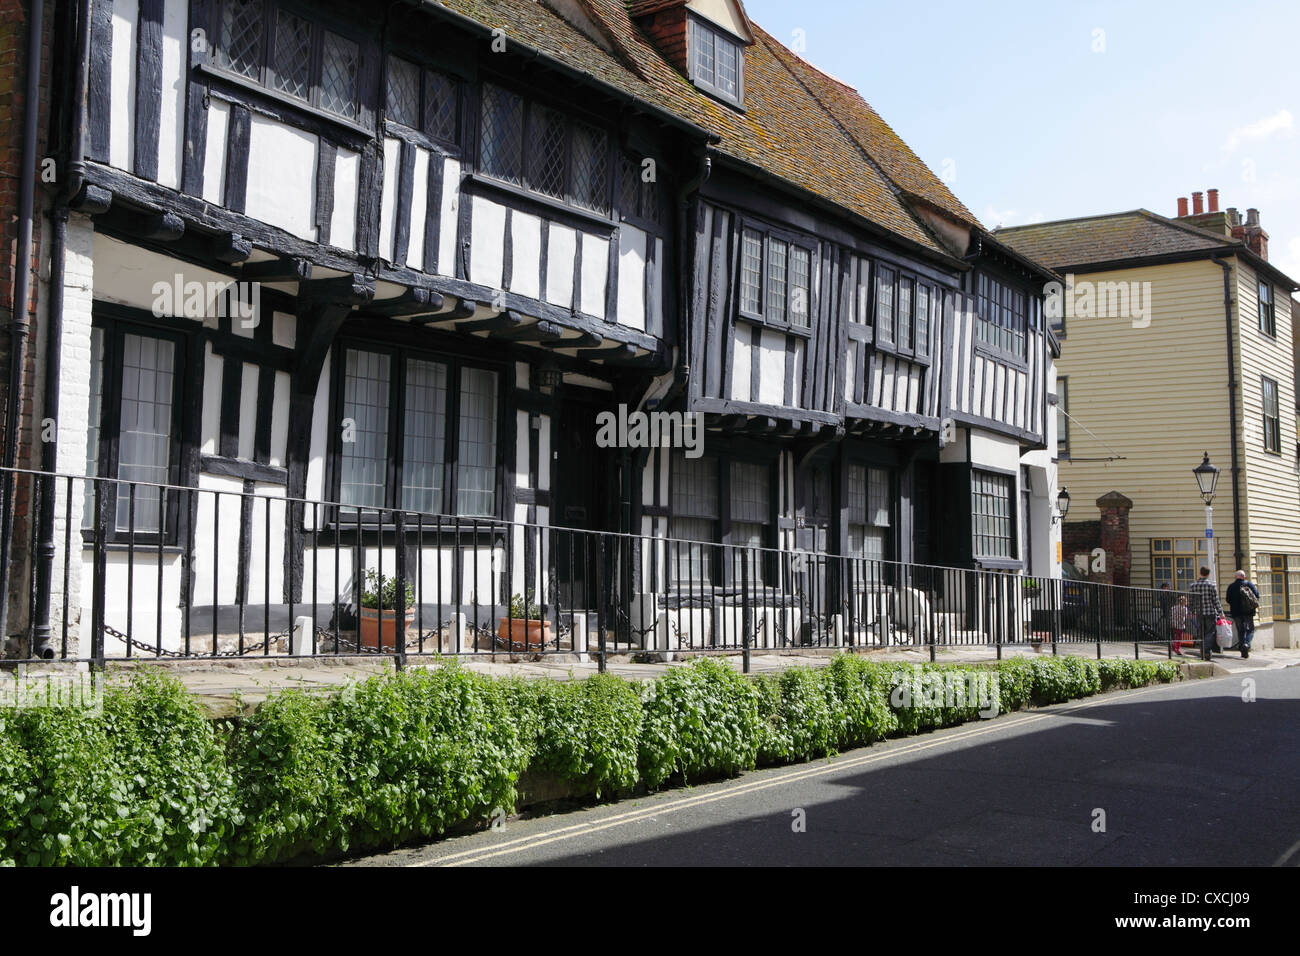 Half timbered medieval Sussex Wealden hall house in All Saints Street Hastings Old Town England UK GB Stock Photo